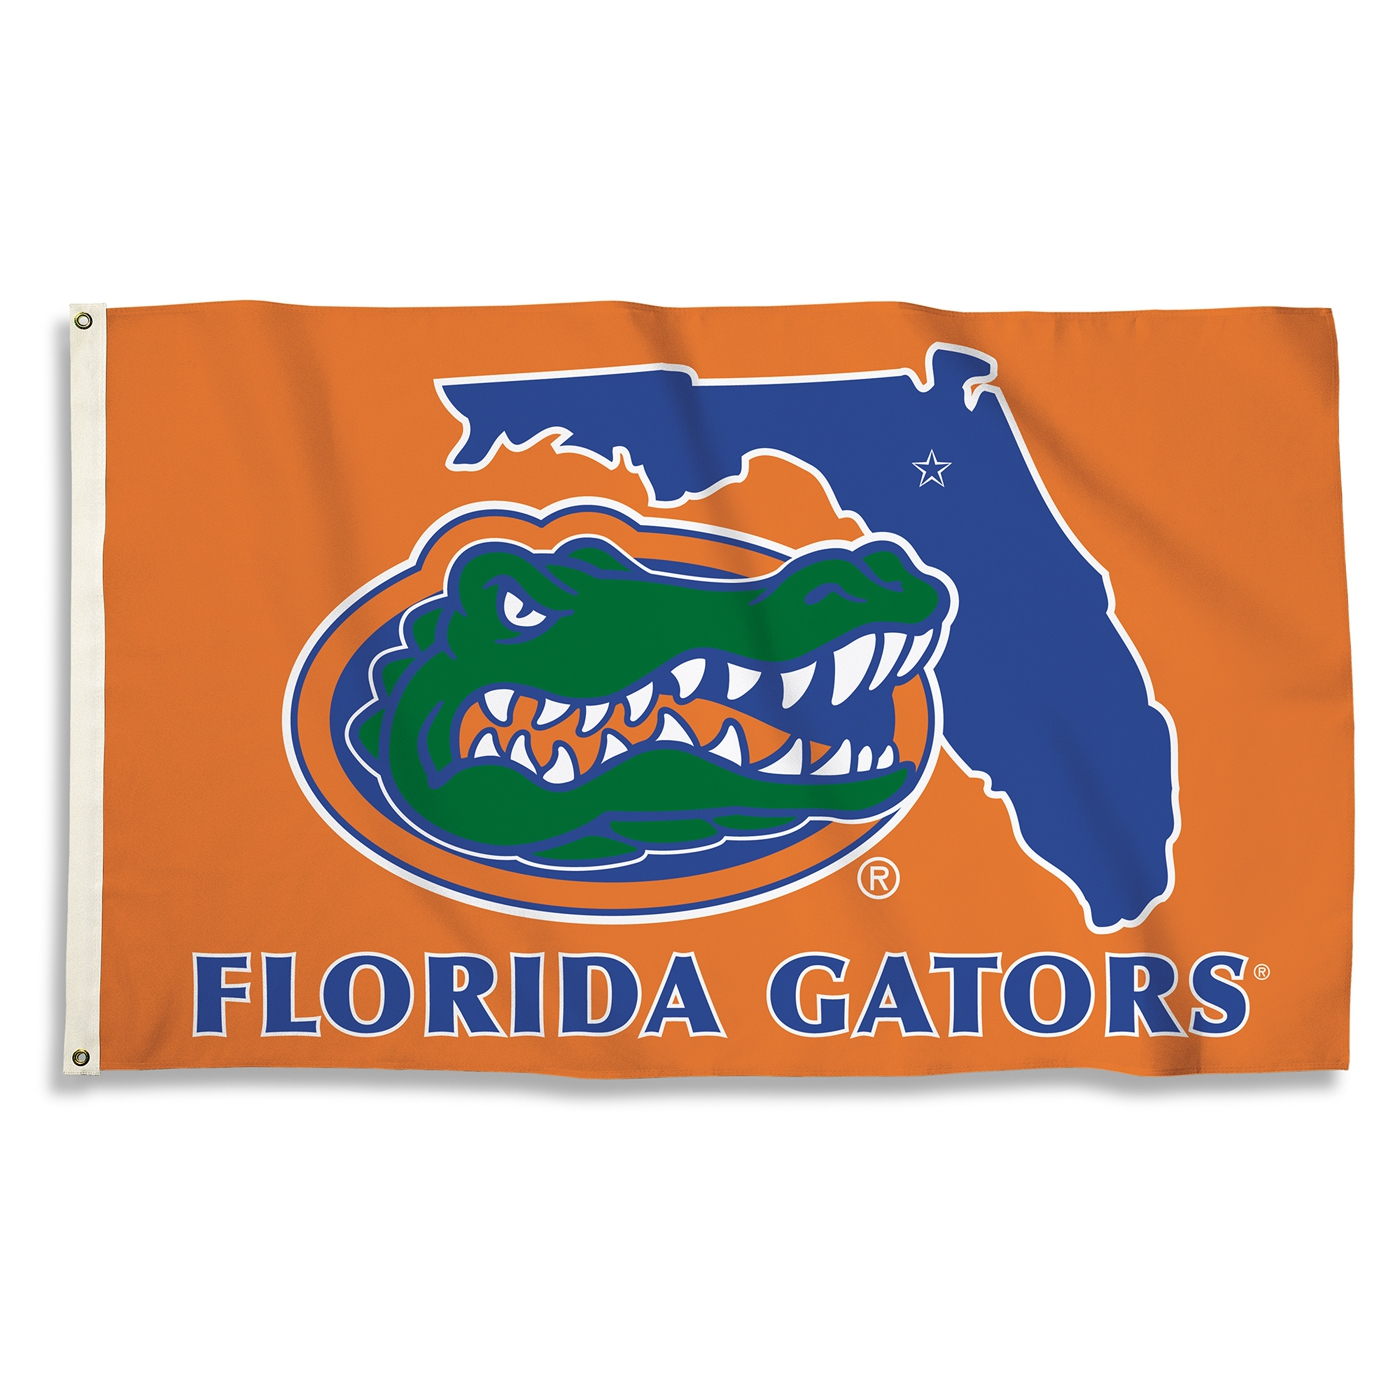 florida gators logo outline. florida gators state outline 3u2032 x 5u2032 flag 23509 4 pack logo